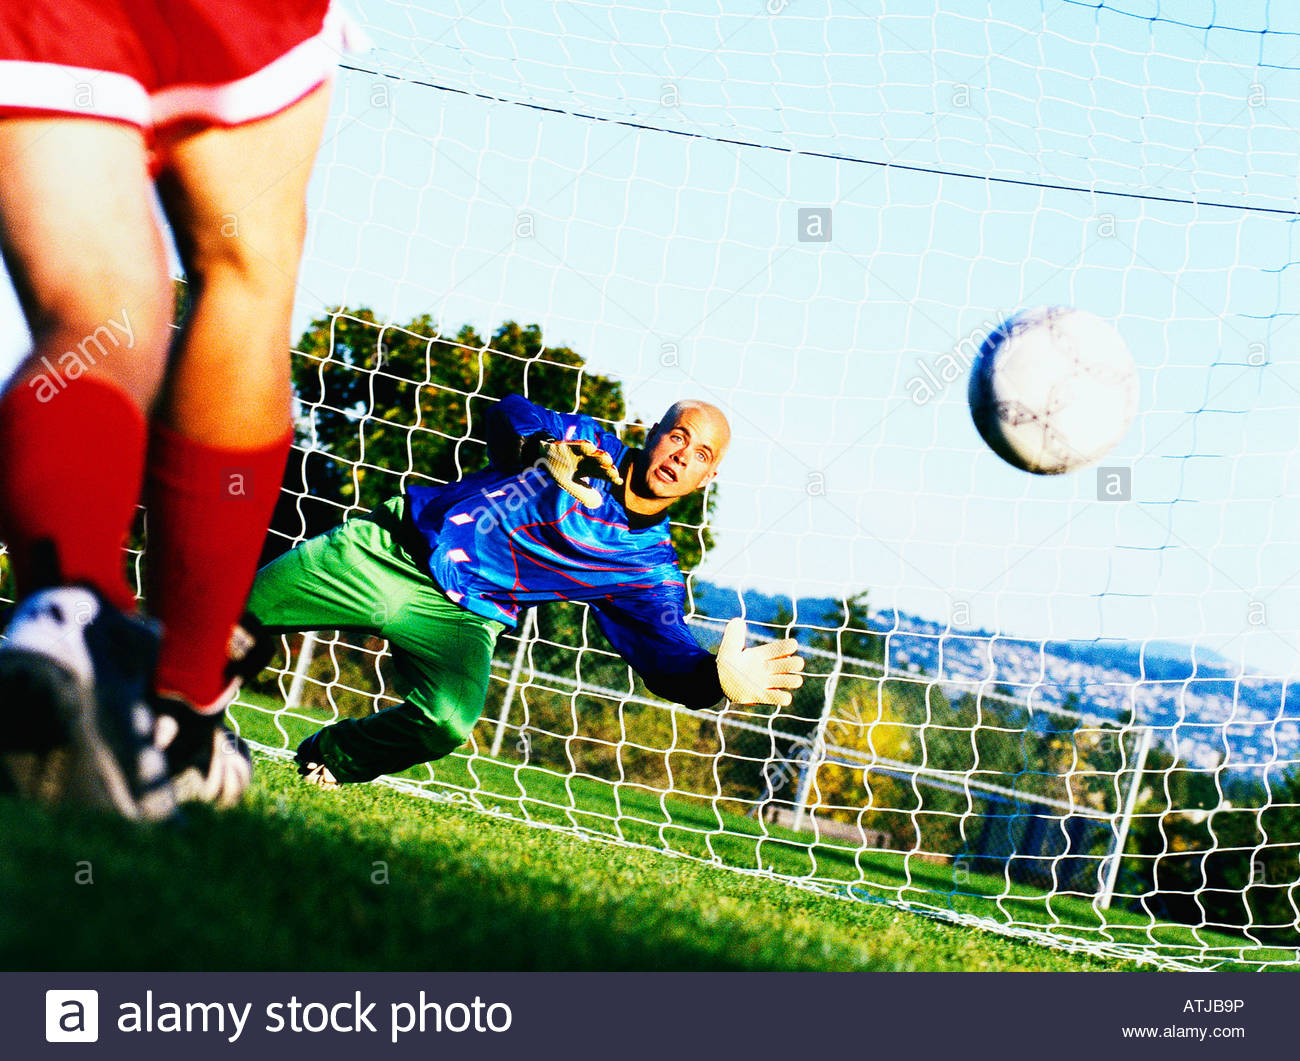 Goalkeeper in front of net diving for a soccer ball in mid air - Stock Image